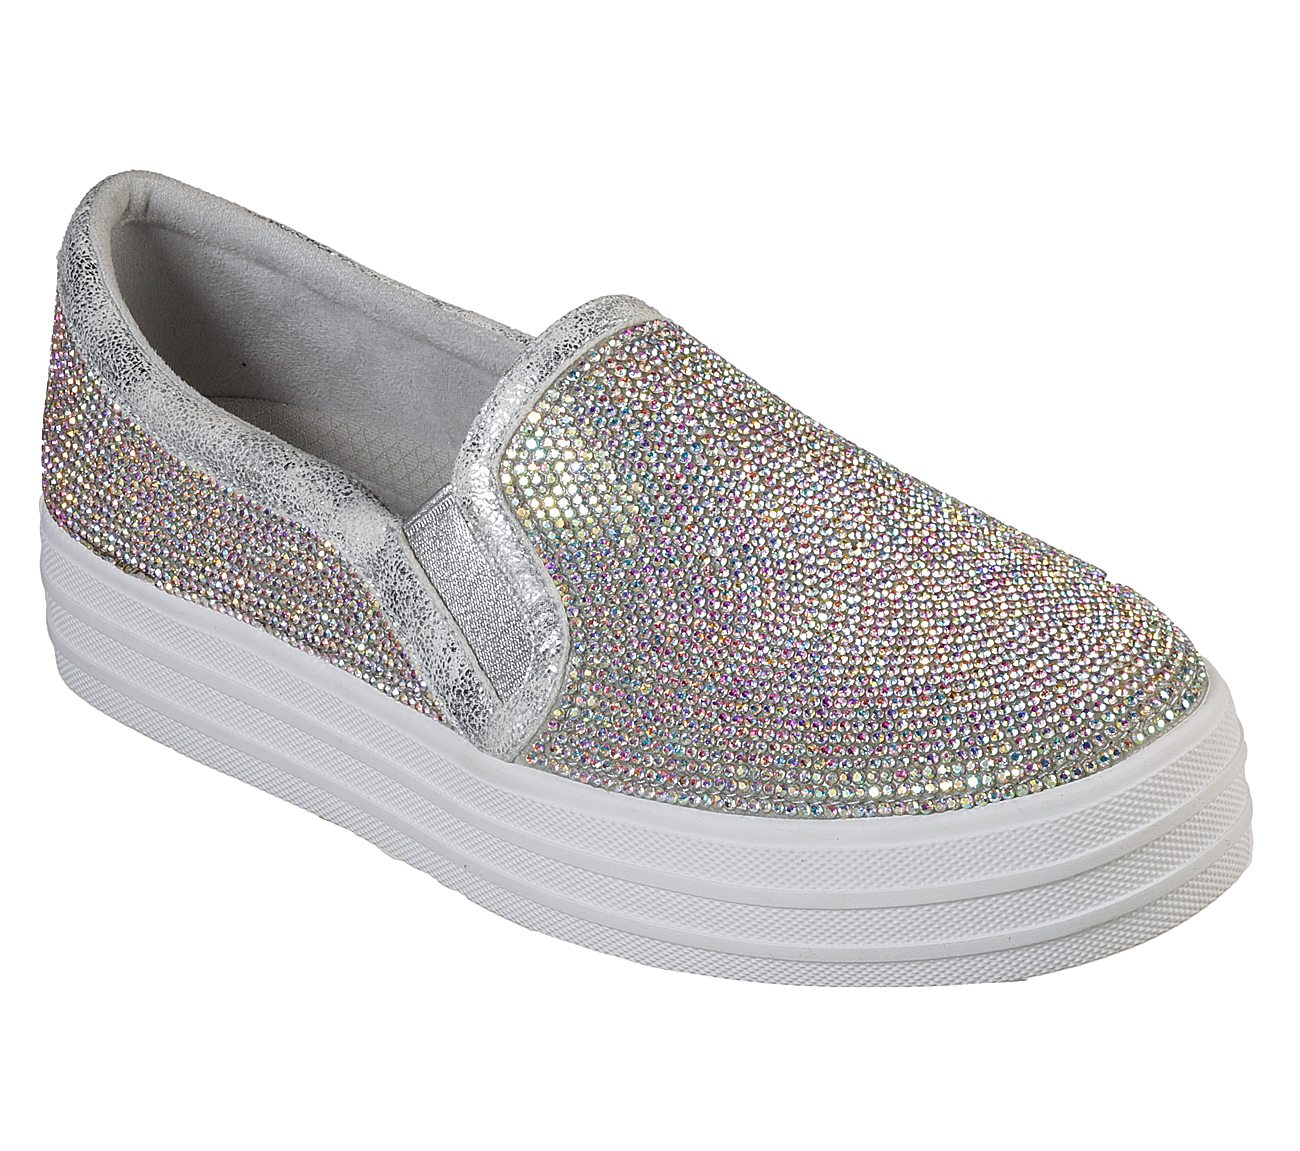 aff9604698 Buy SKECHERS Double Up - Blinders SKECHER Street Shoes only £59.00